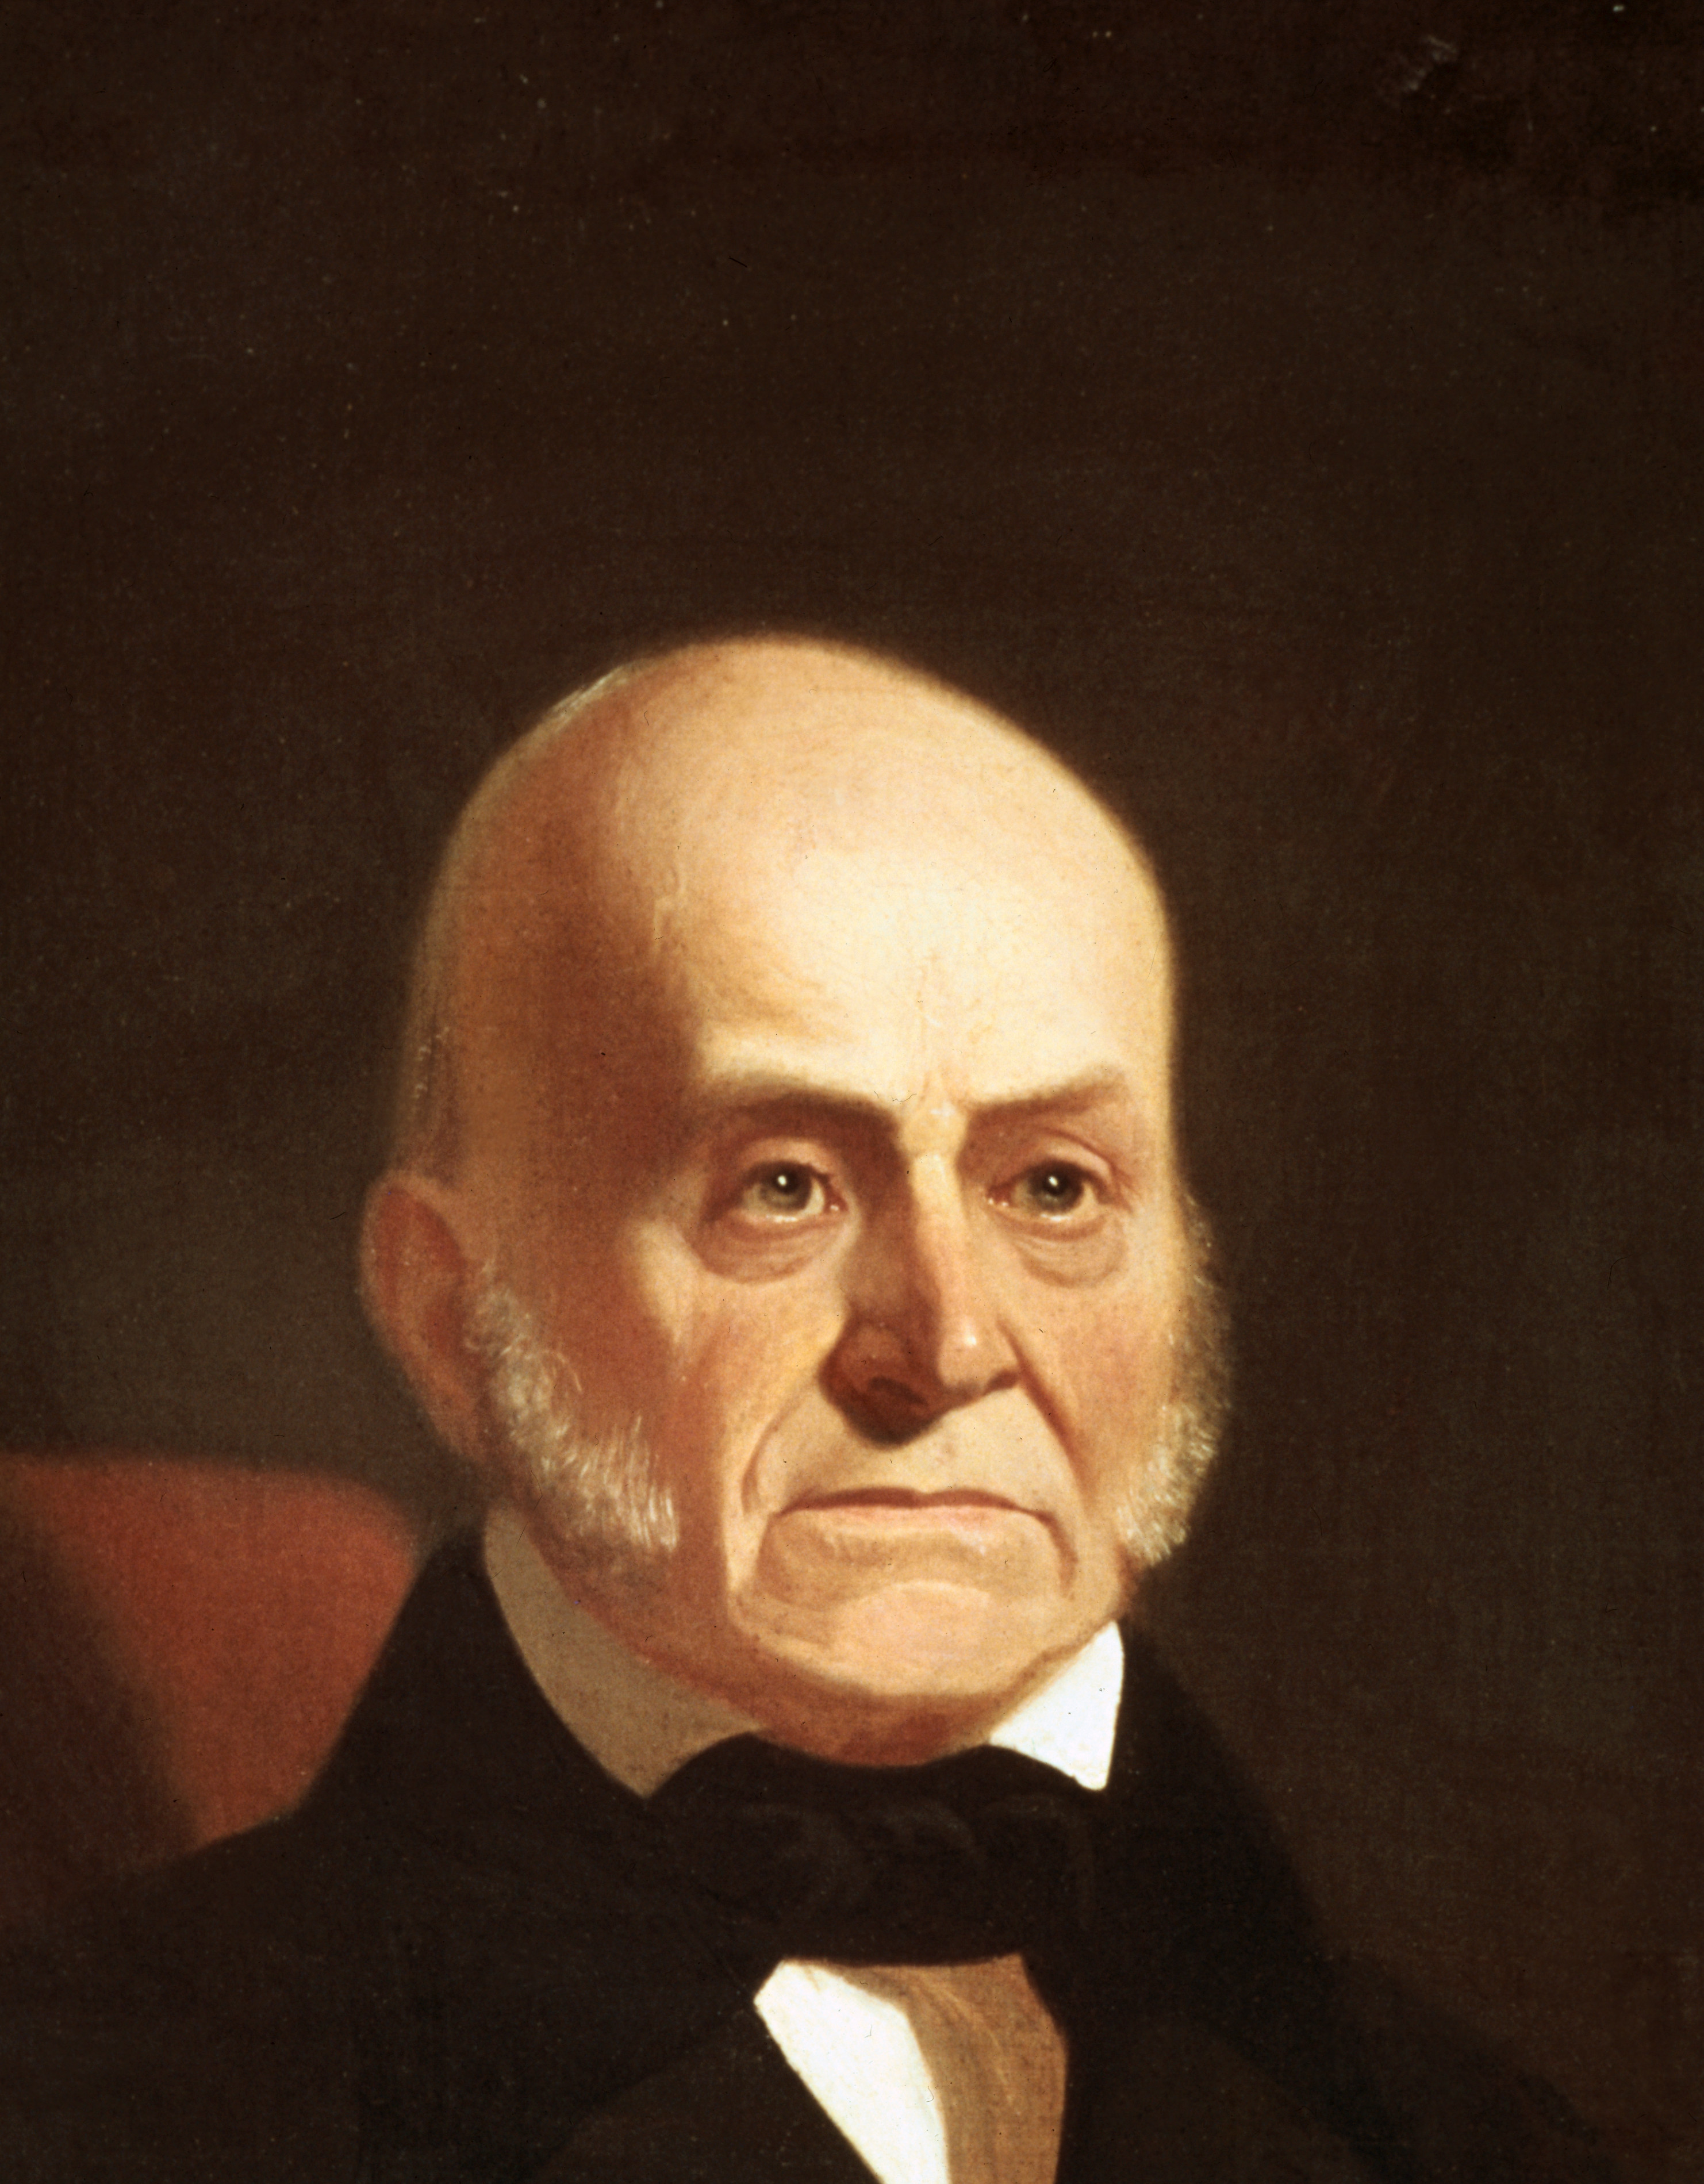 an analysis of the presidential profile of john quincy adams John quincy adams and the transformation of american politics  as an  ineffective president during an especially rancorous time, adams was humiliated  in  and meaning, as william j cooper's momentous biography so eloquently  affirms.